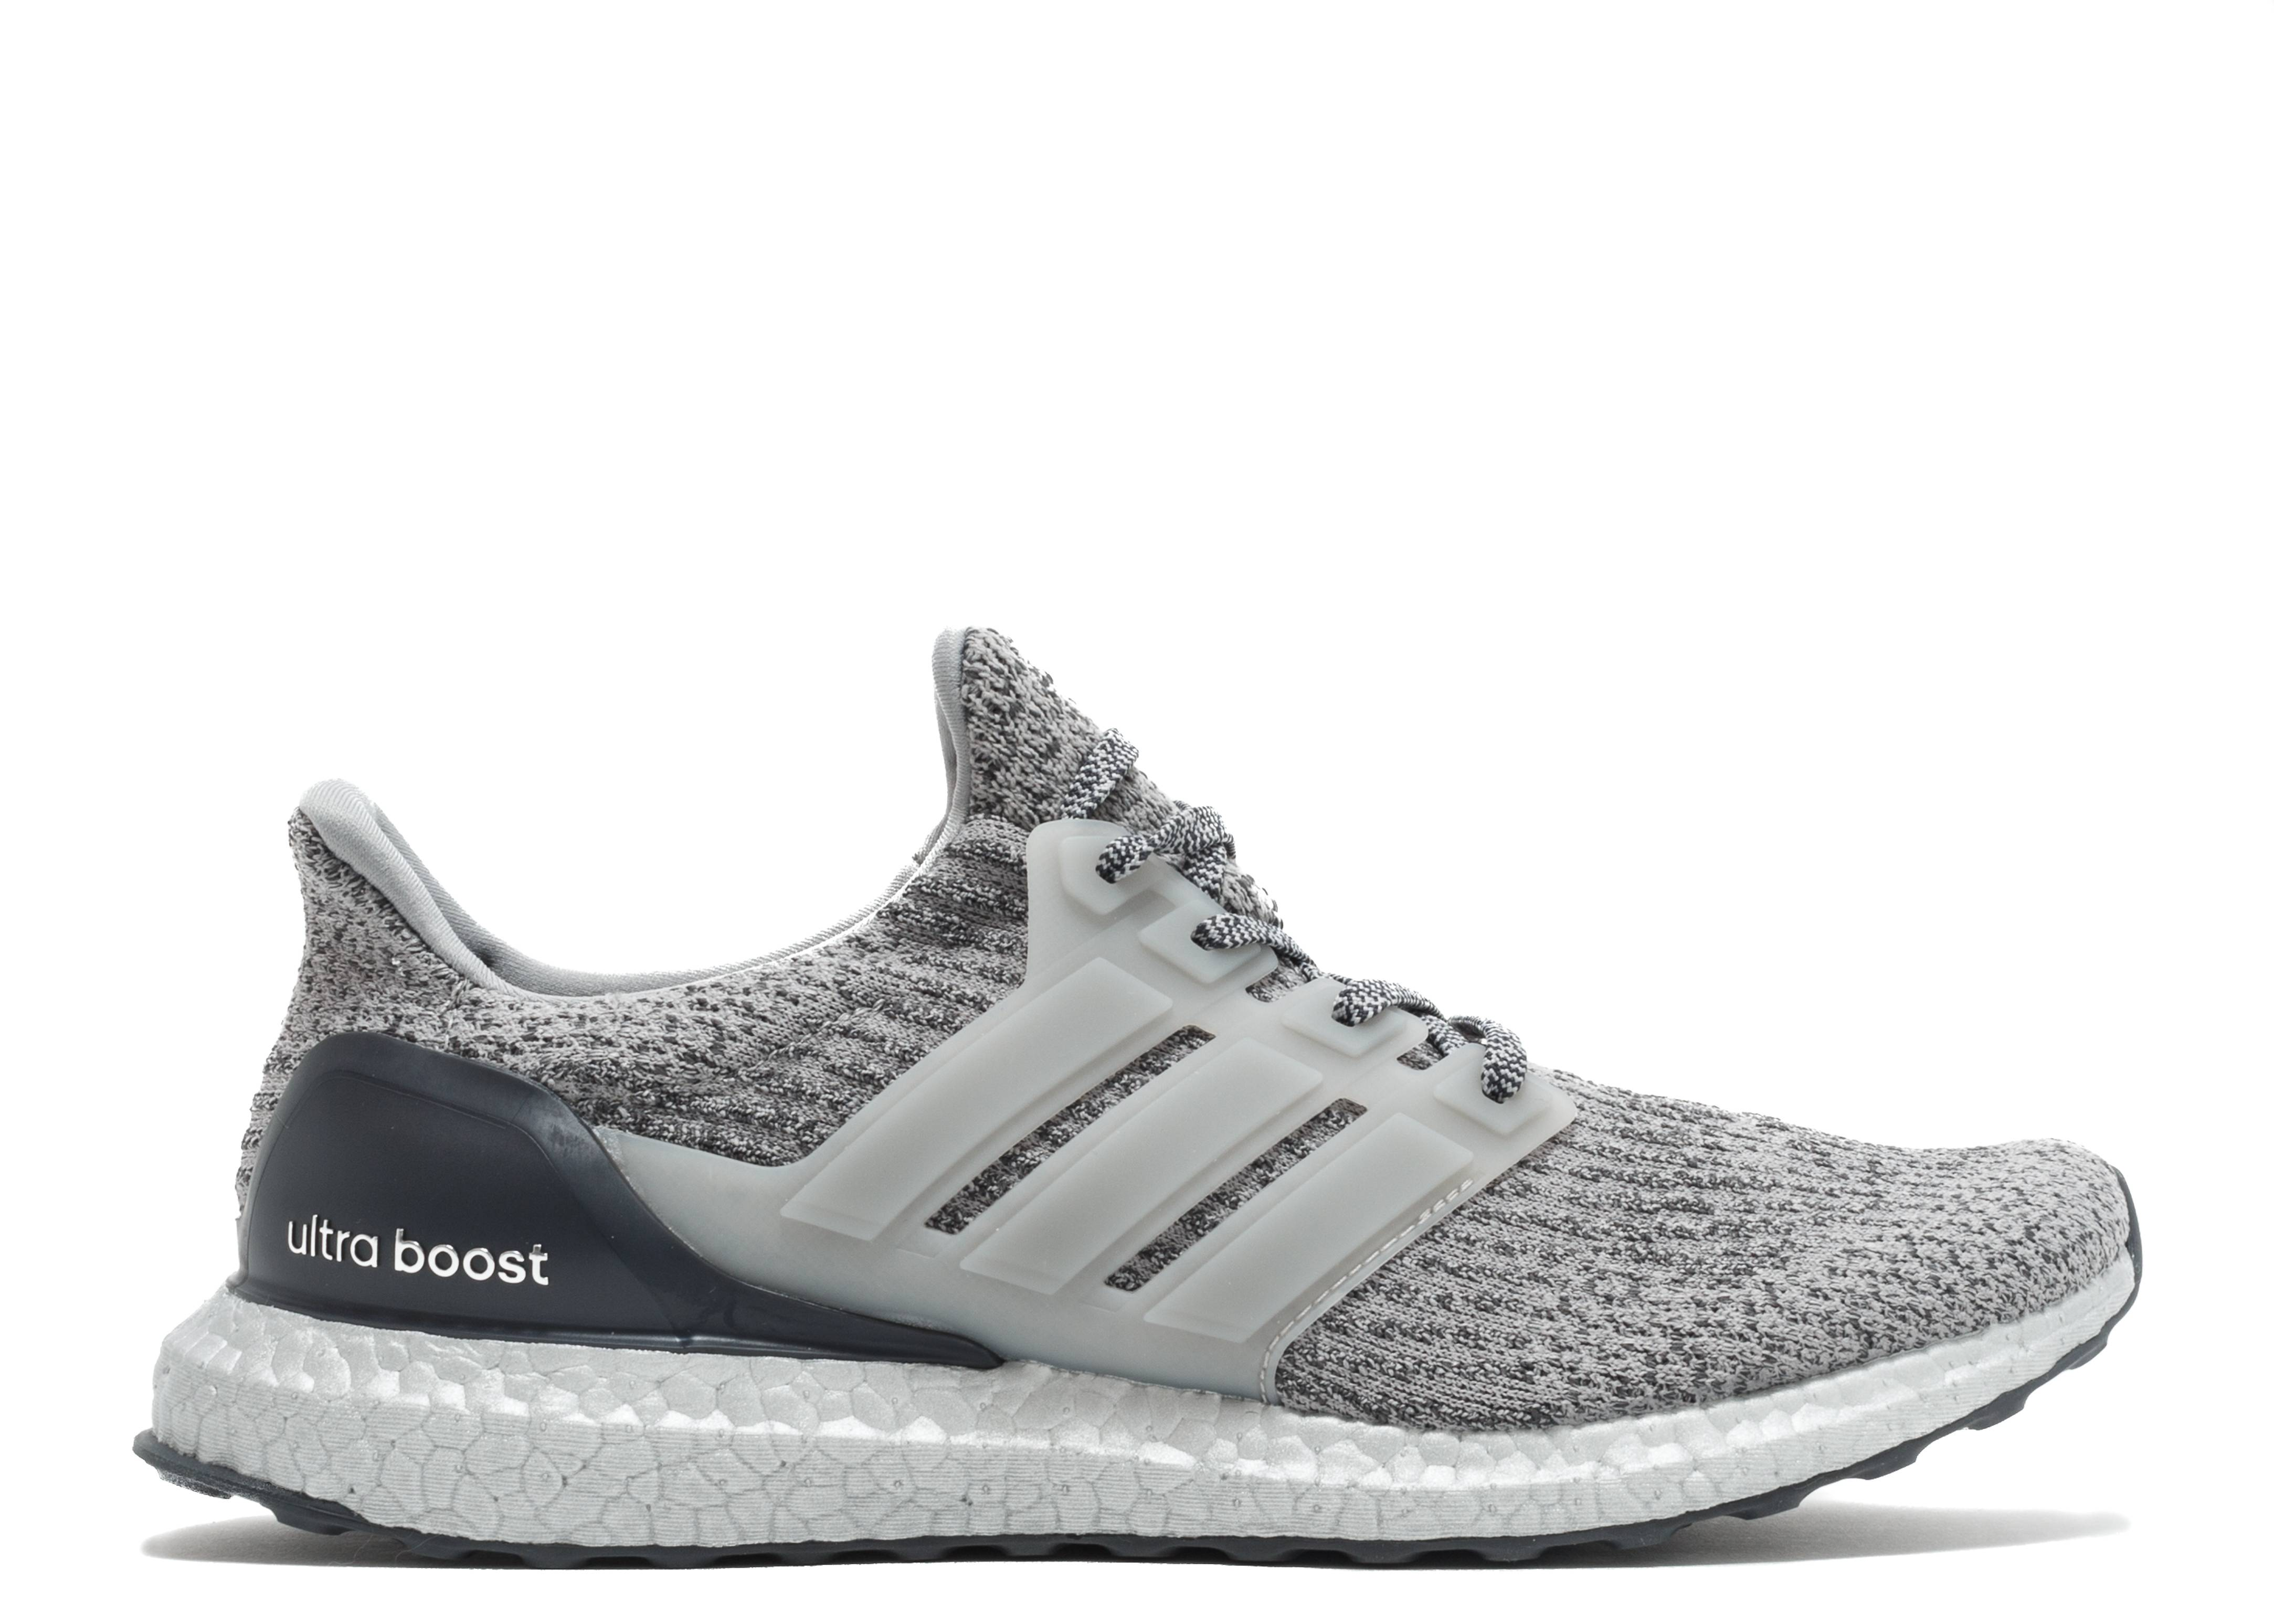 adidas Ultra Boost 3.0 LTD Features Leather Cage Construction